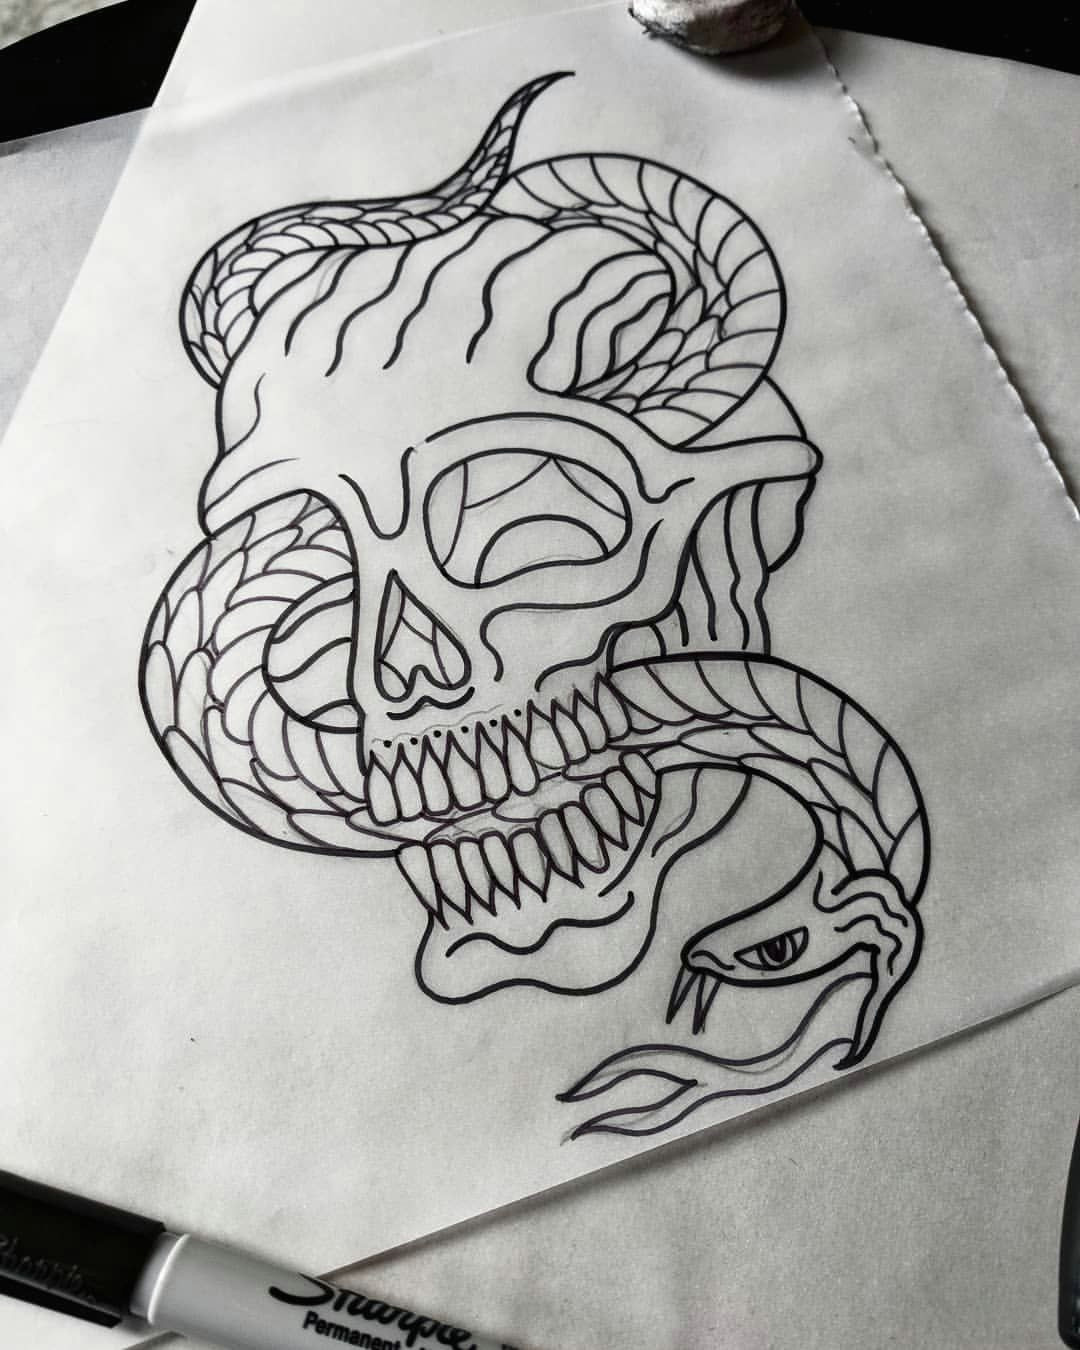 drew this up yesterday it s available space nxt week thanks skull snake tattoo tattoodesign blacktattooart traditionaltattoo